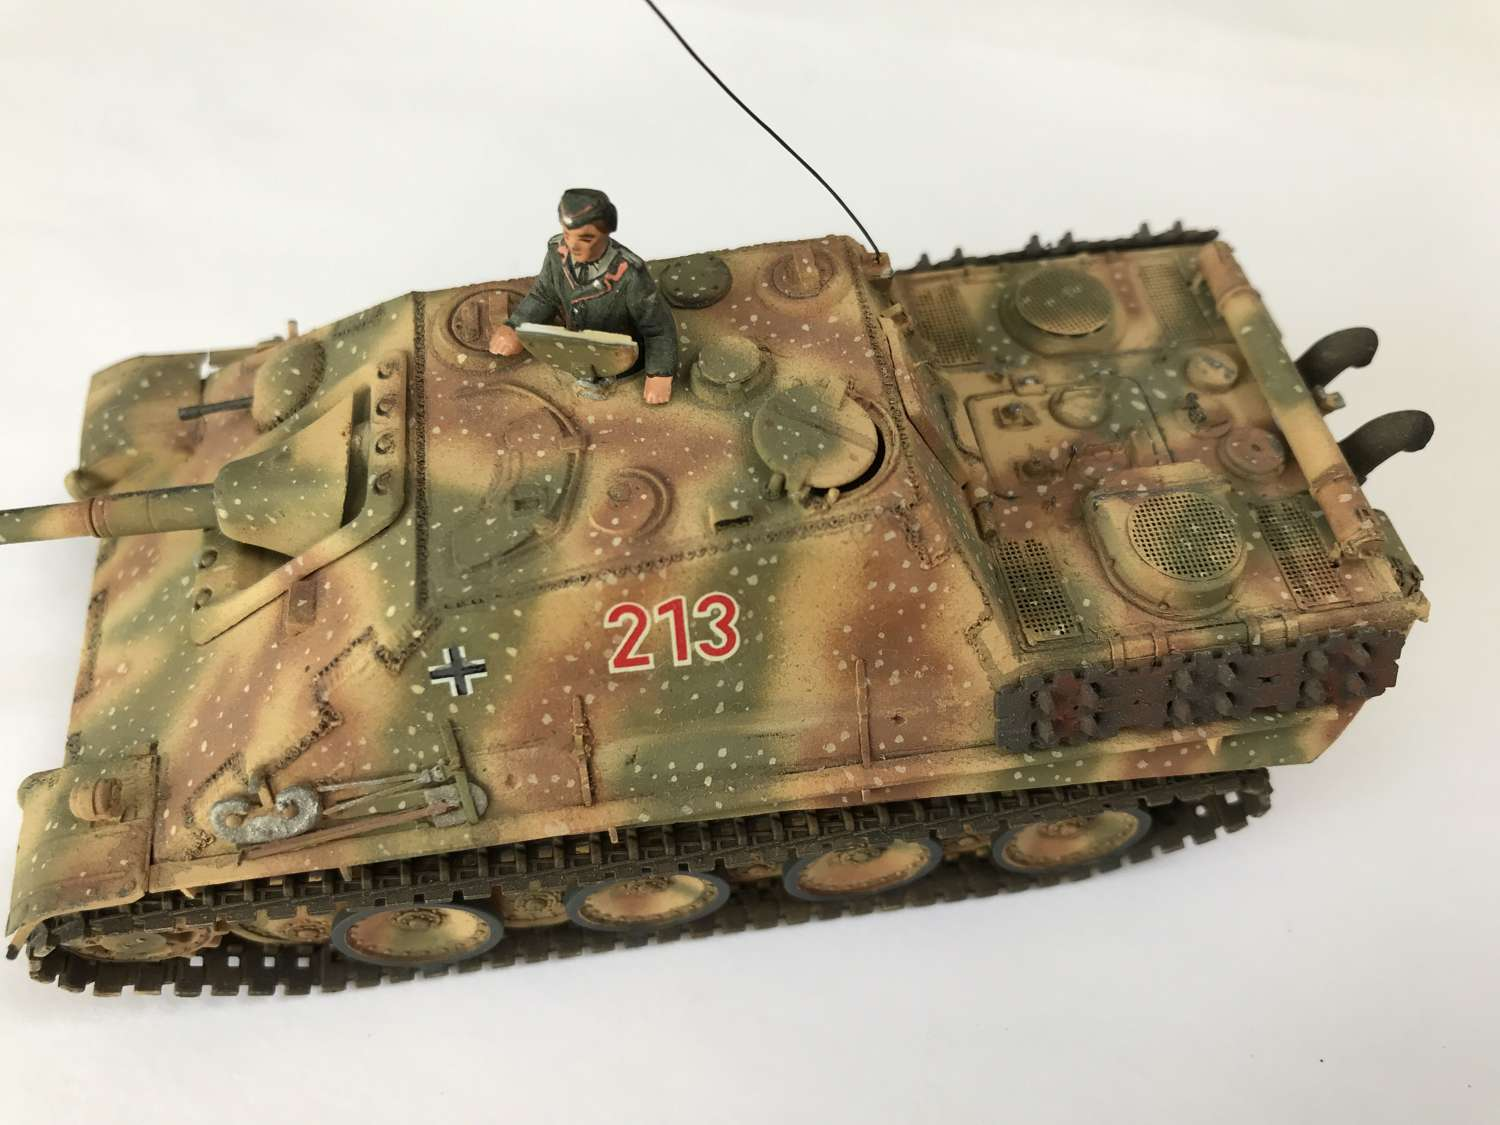 Model Jagdpanther 1/72 scale